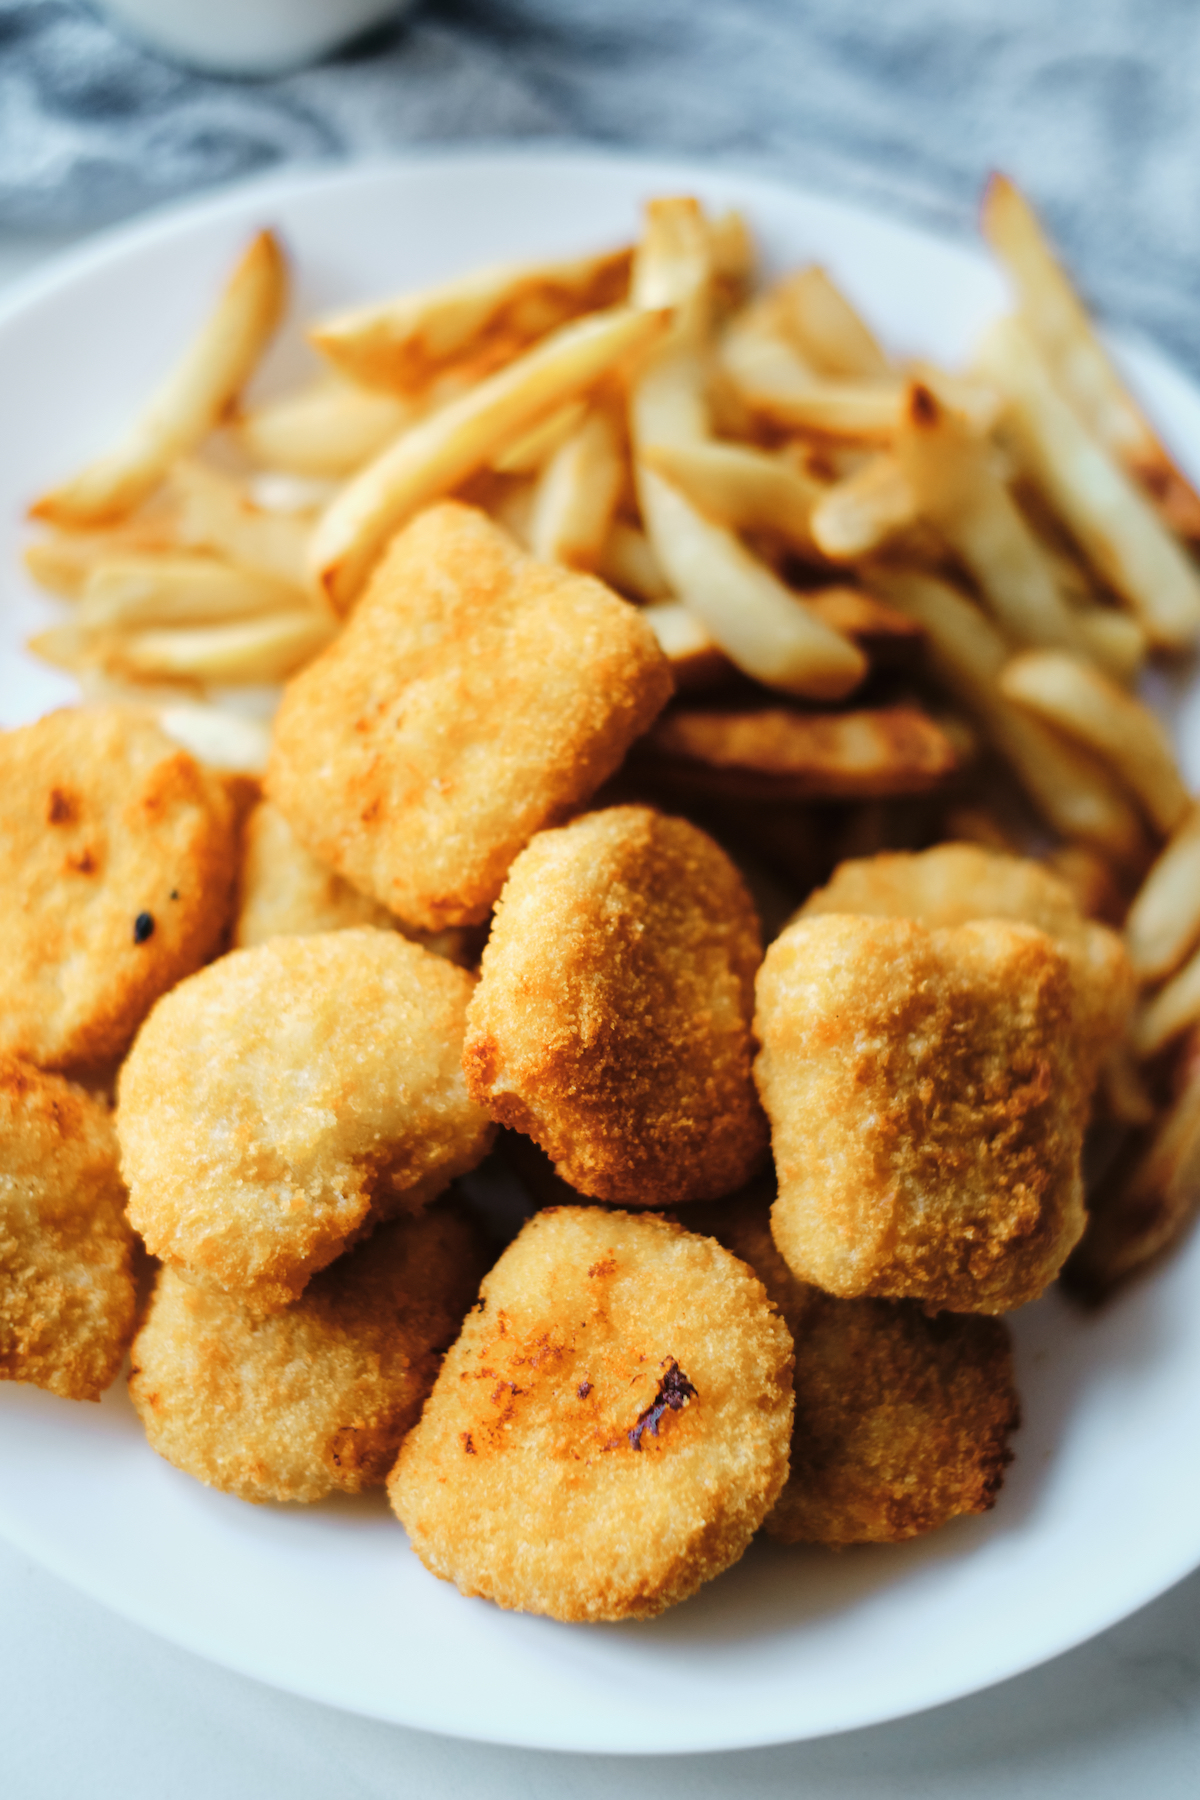 a plate of chicken nuggets and french fries